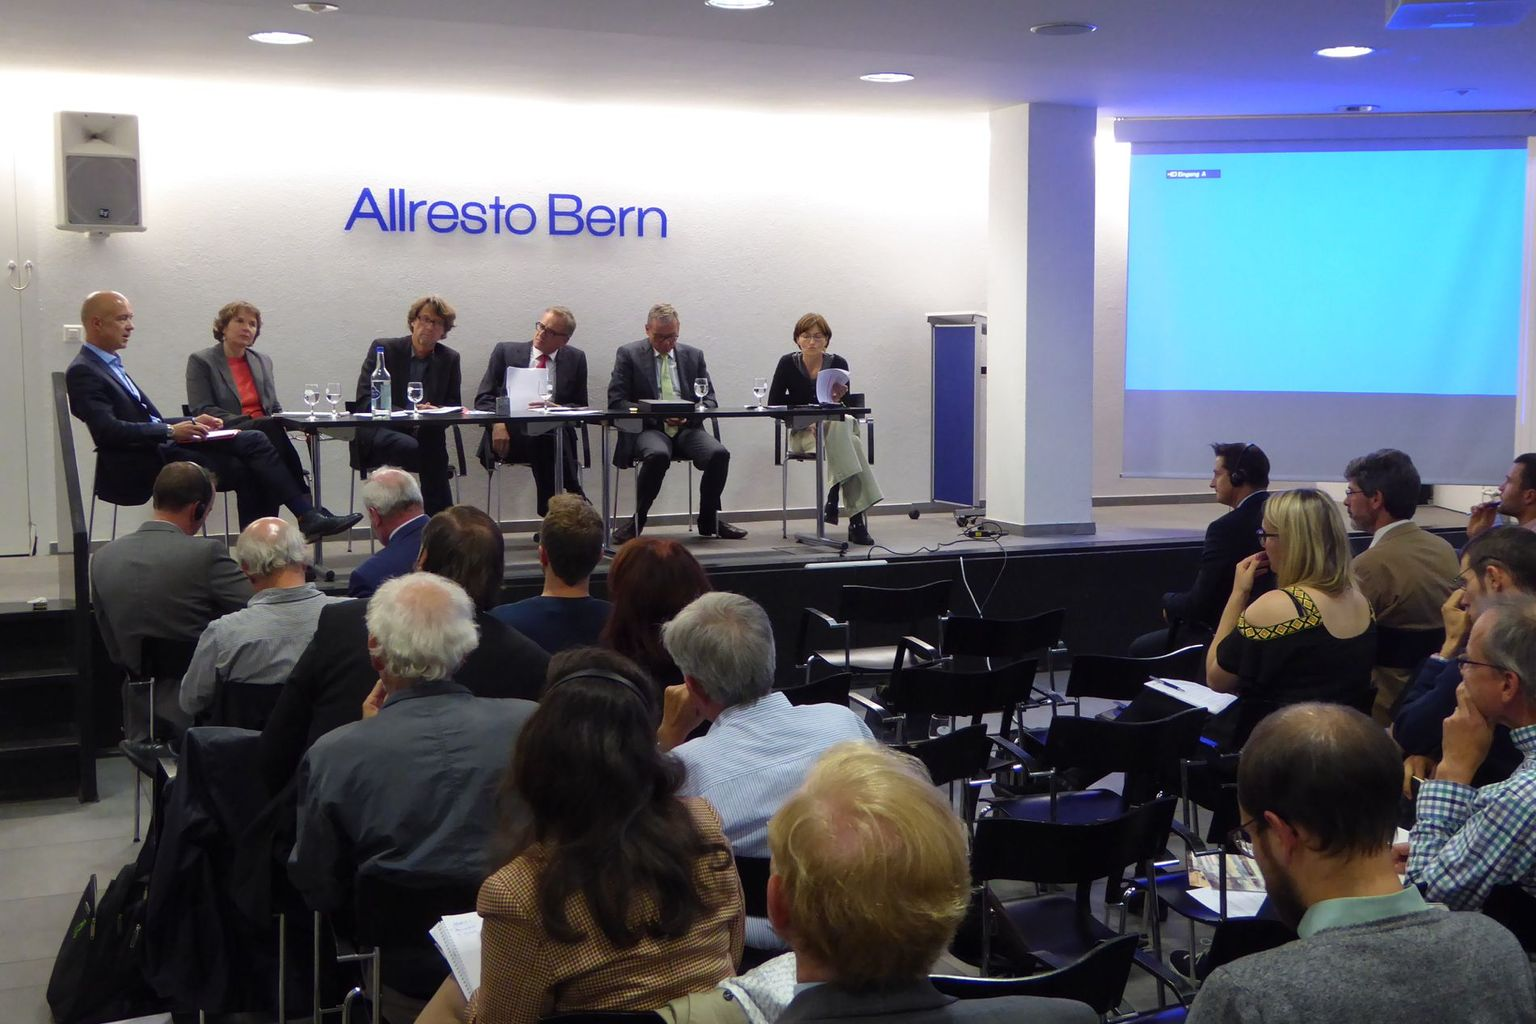 Panel-Discussion 20.9. 2016 with M. Fasser, E. Bürgi, A.Missbach, S. Barmettler (moderator), R. Noser and R. Rytz